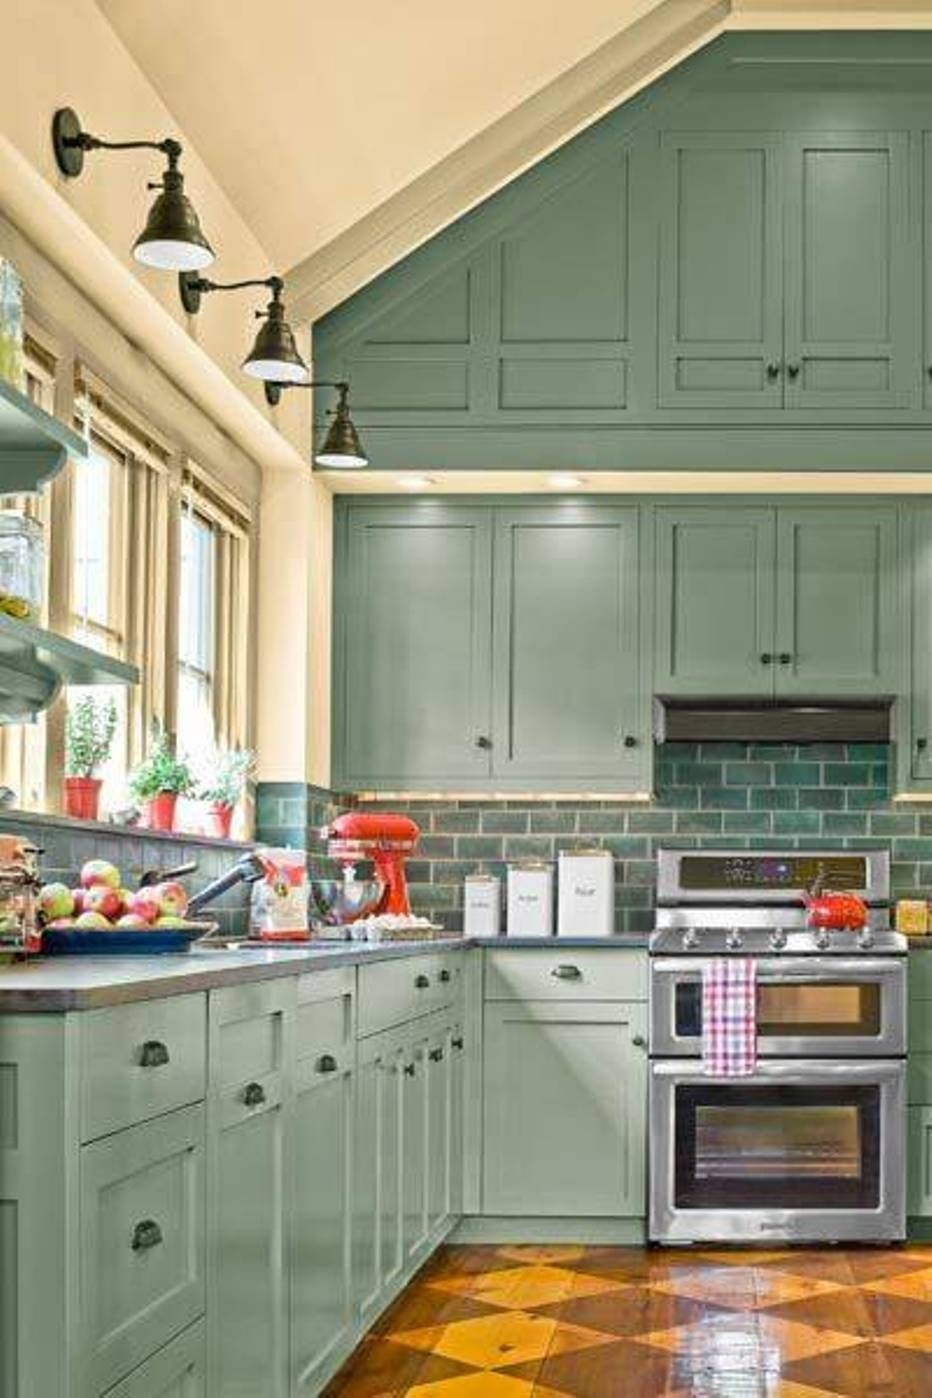 Slater Creek Cabin: Kitchen Ideas | Kitchens | Pinterest